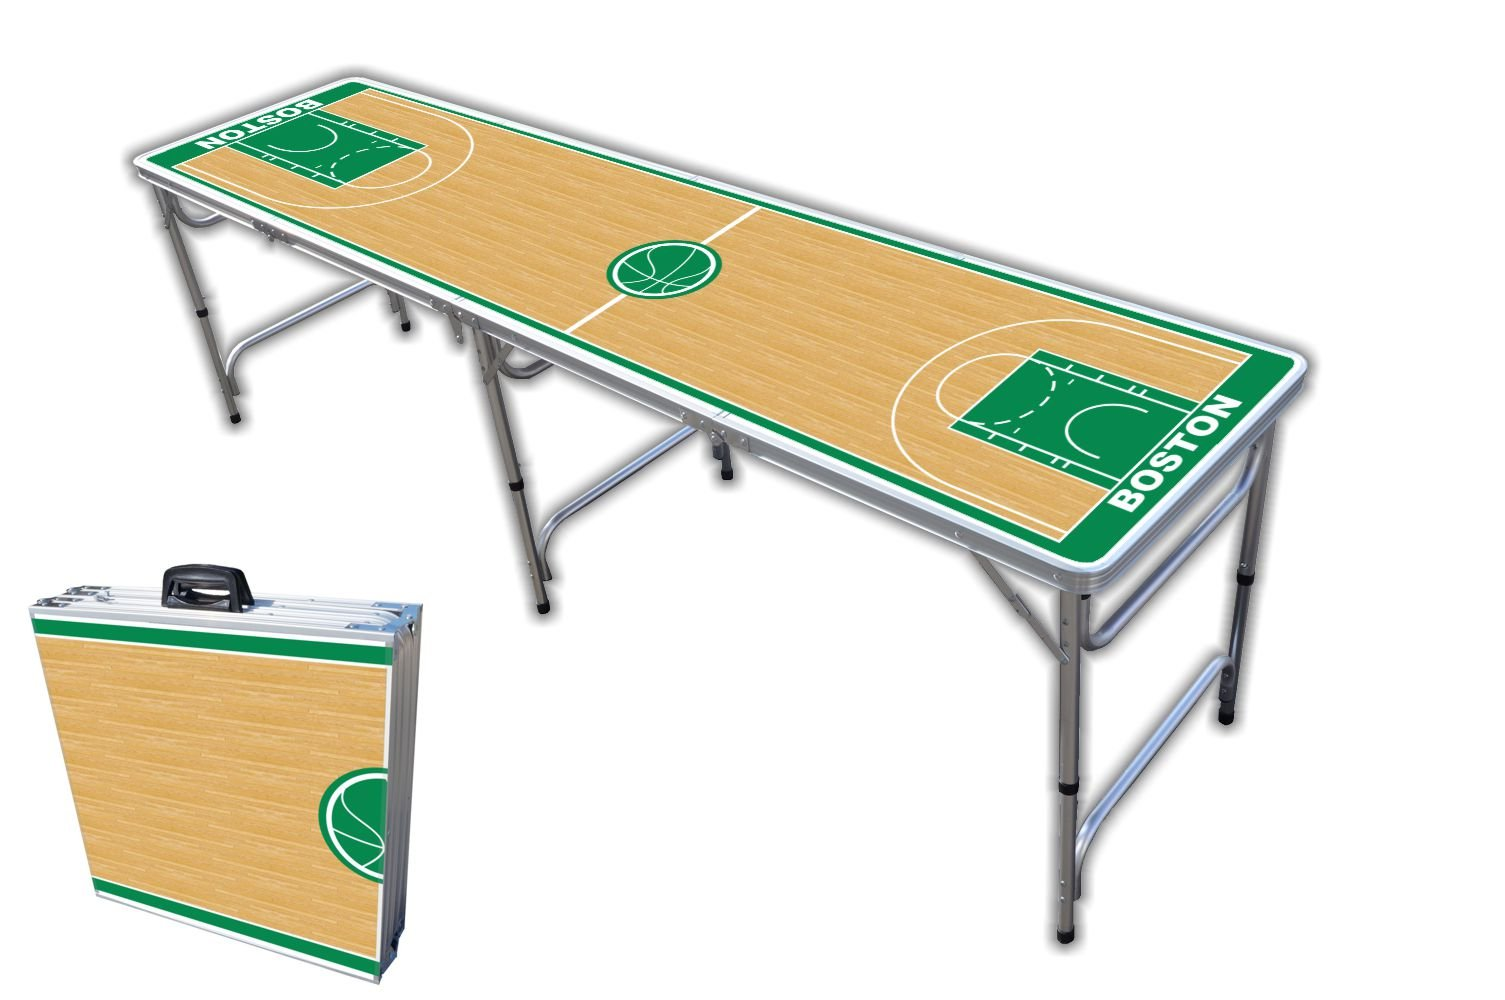 8-Foot Professional Beer Pong Table - Boston Basketball Court Graphic by PartyPongTables.com